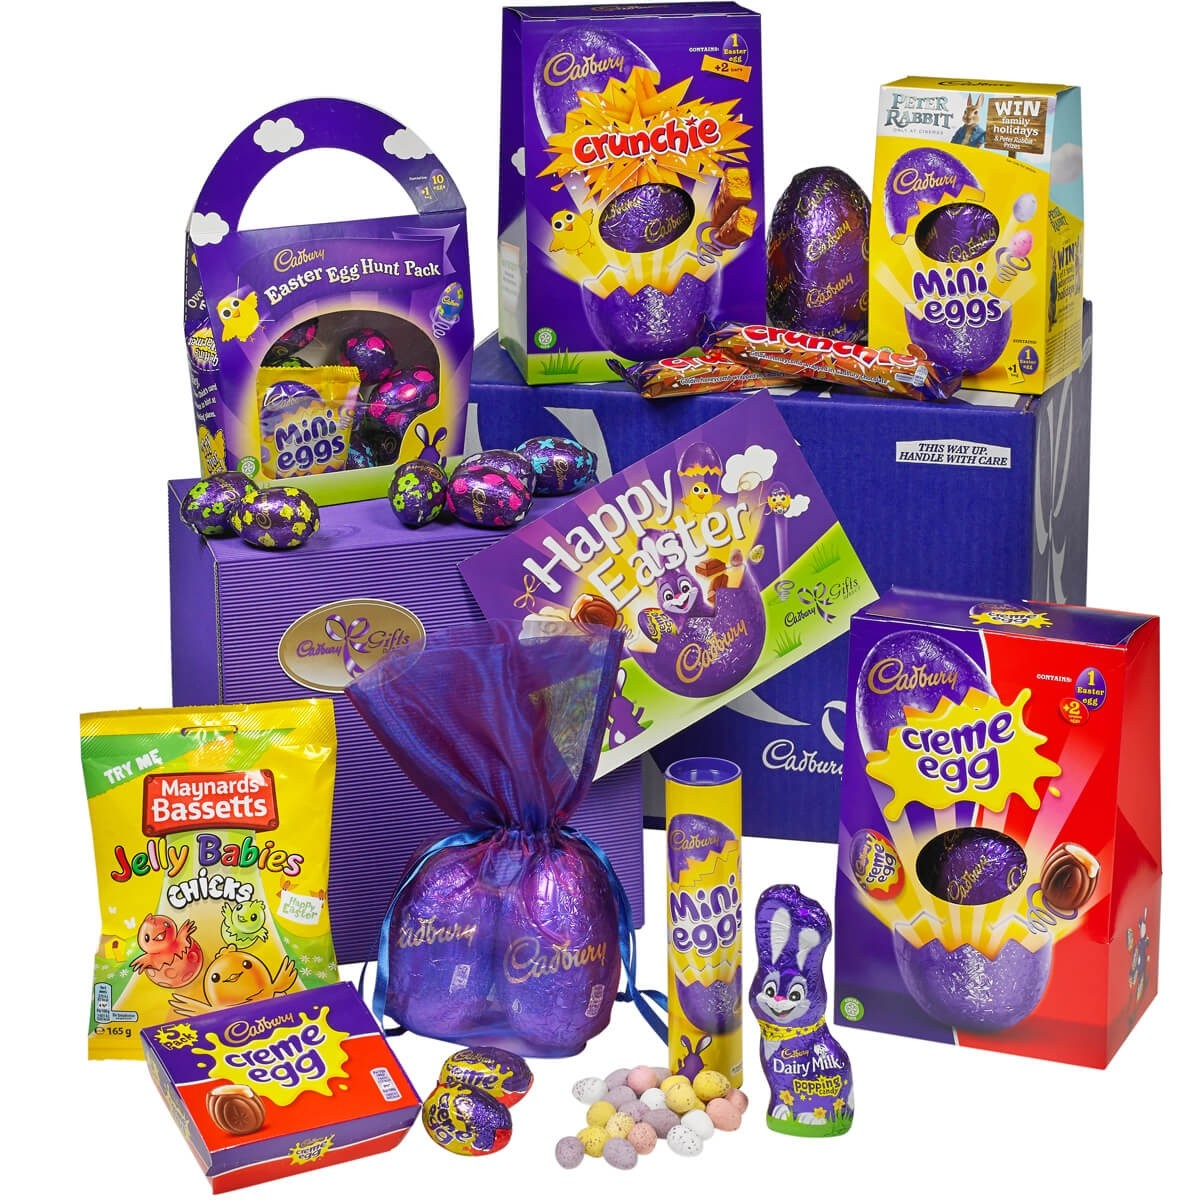 Win easter ended this eggsential easter collection from cadbury gifts direct contains easter eggs from large to small and a host of other delicious chocolate and sweetie negle Image collections